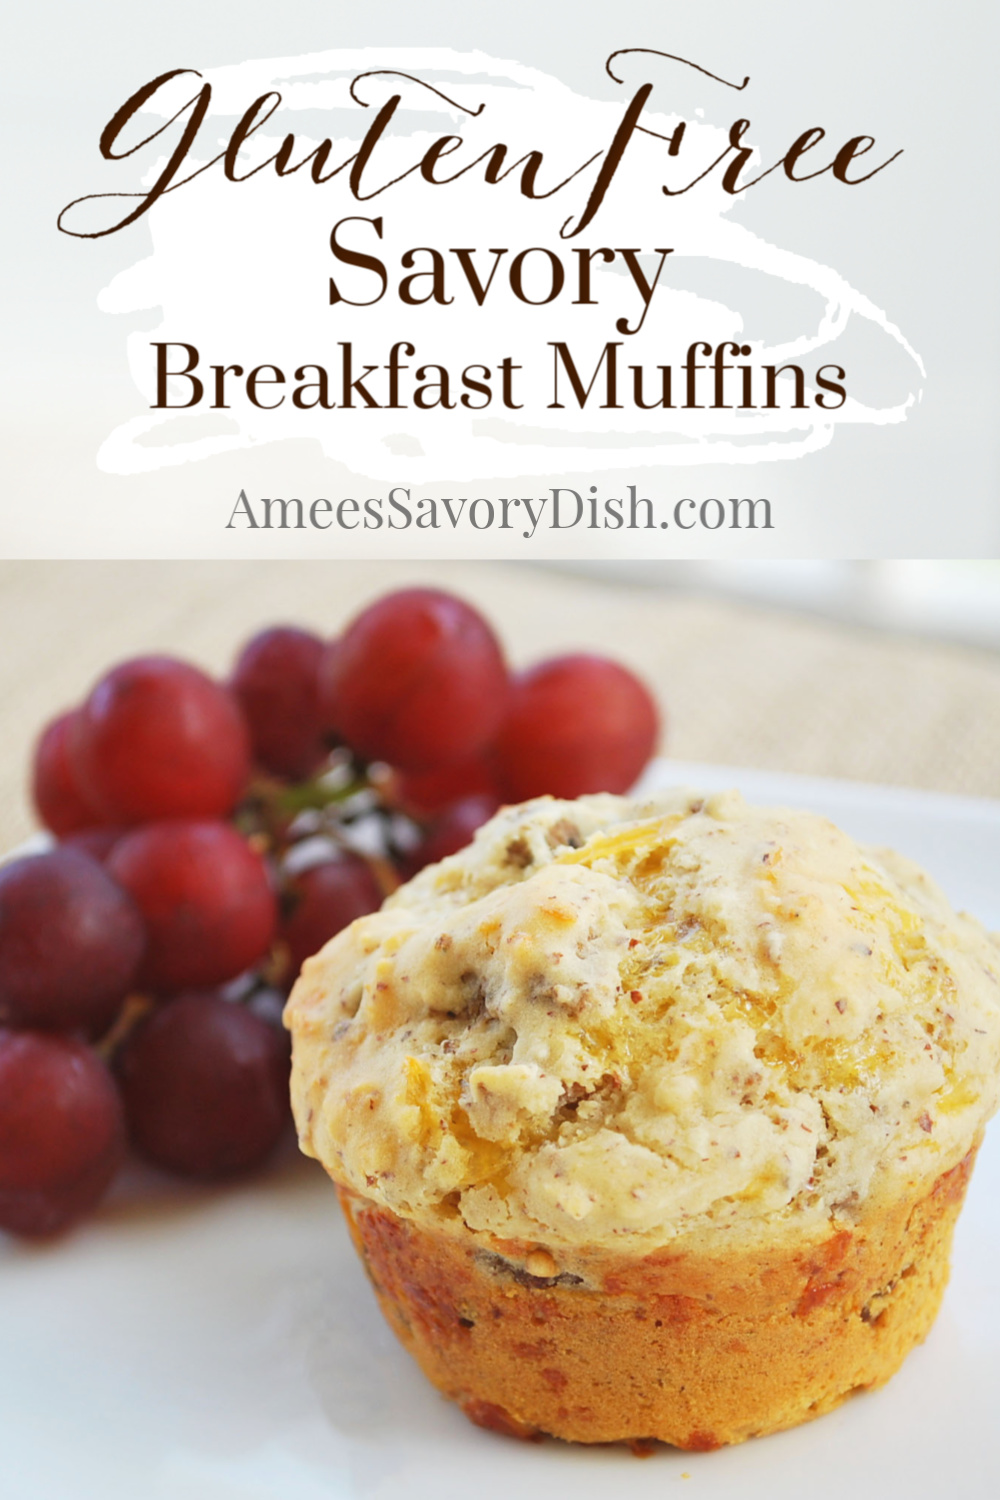 A fluffy and flavorful savory gluten-free muffin recipe made with gluten-free baking mix, crumbled sausage, and sharp cheddar cheese. These savory muffins are perfect for breakfast or a filling snack. via @Ameessavorydish